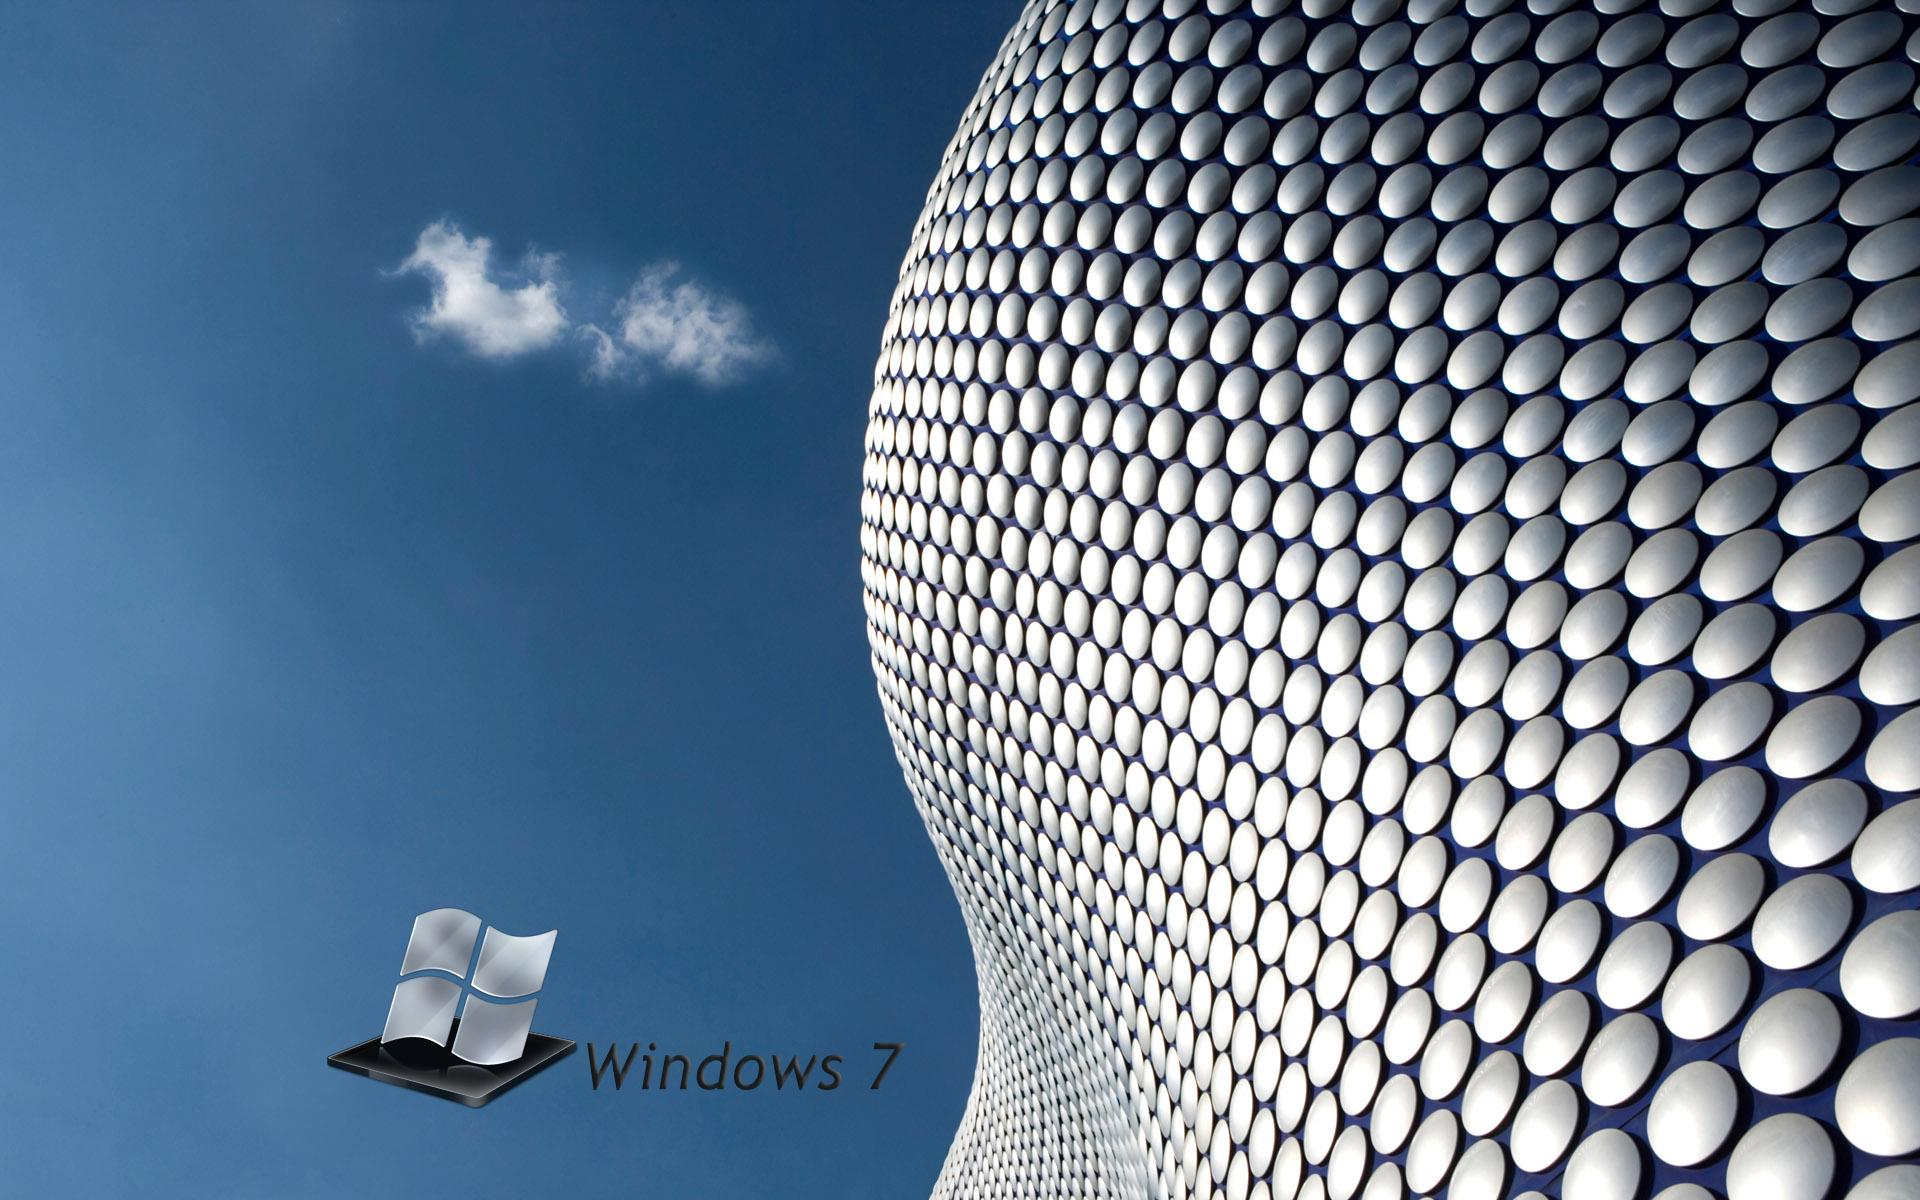 windows 7 wallpapers architecture: Owalnie » Tapety Systemy Operacyjne HD